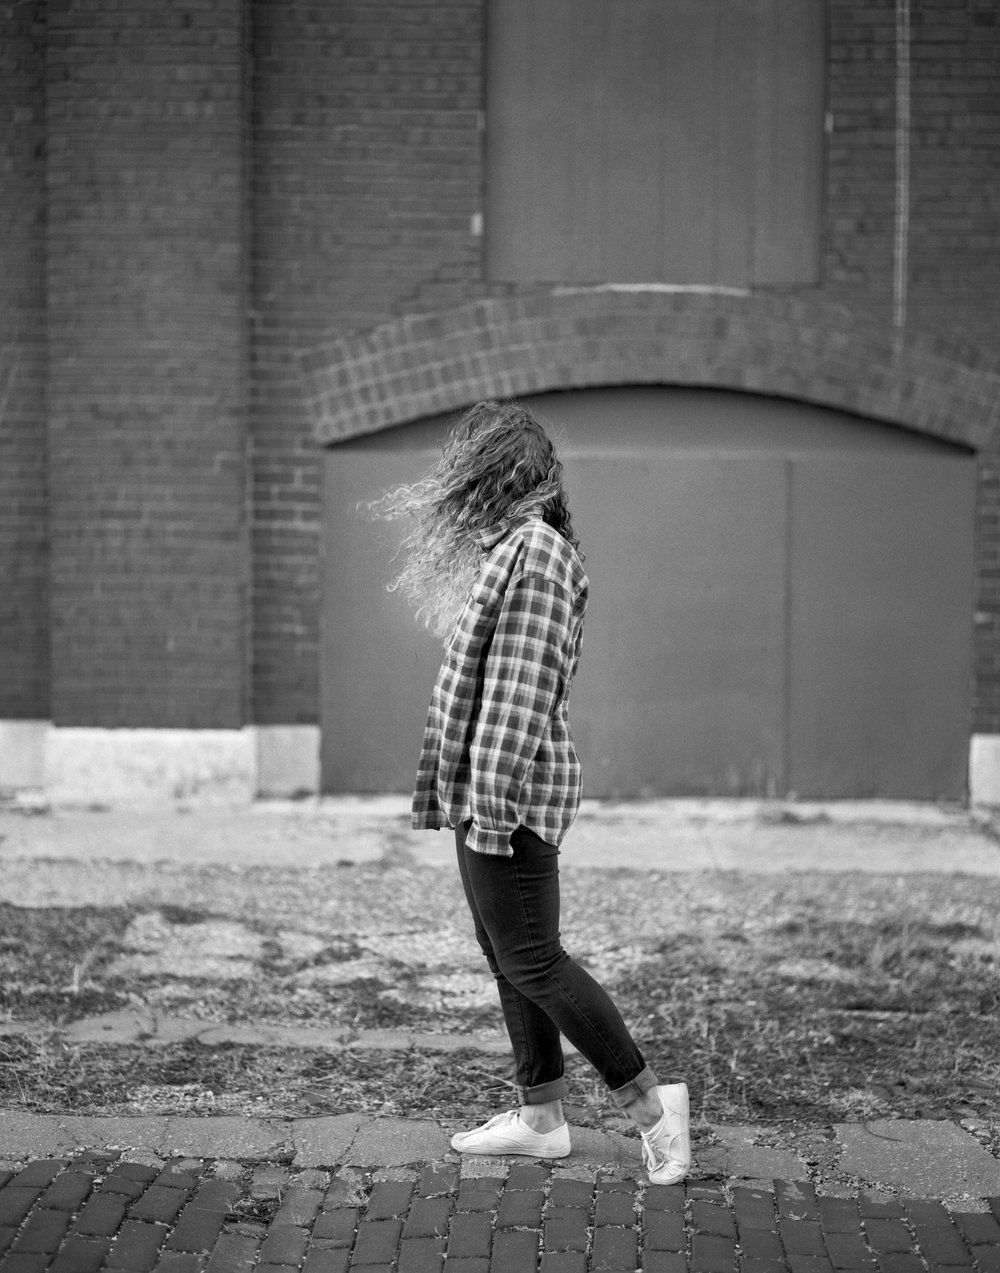 I really enjoyed working with the wind on the location. We were walking when I looked over at Jo and noticed her natural stride made for a cool pose.